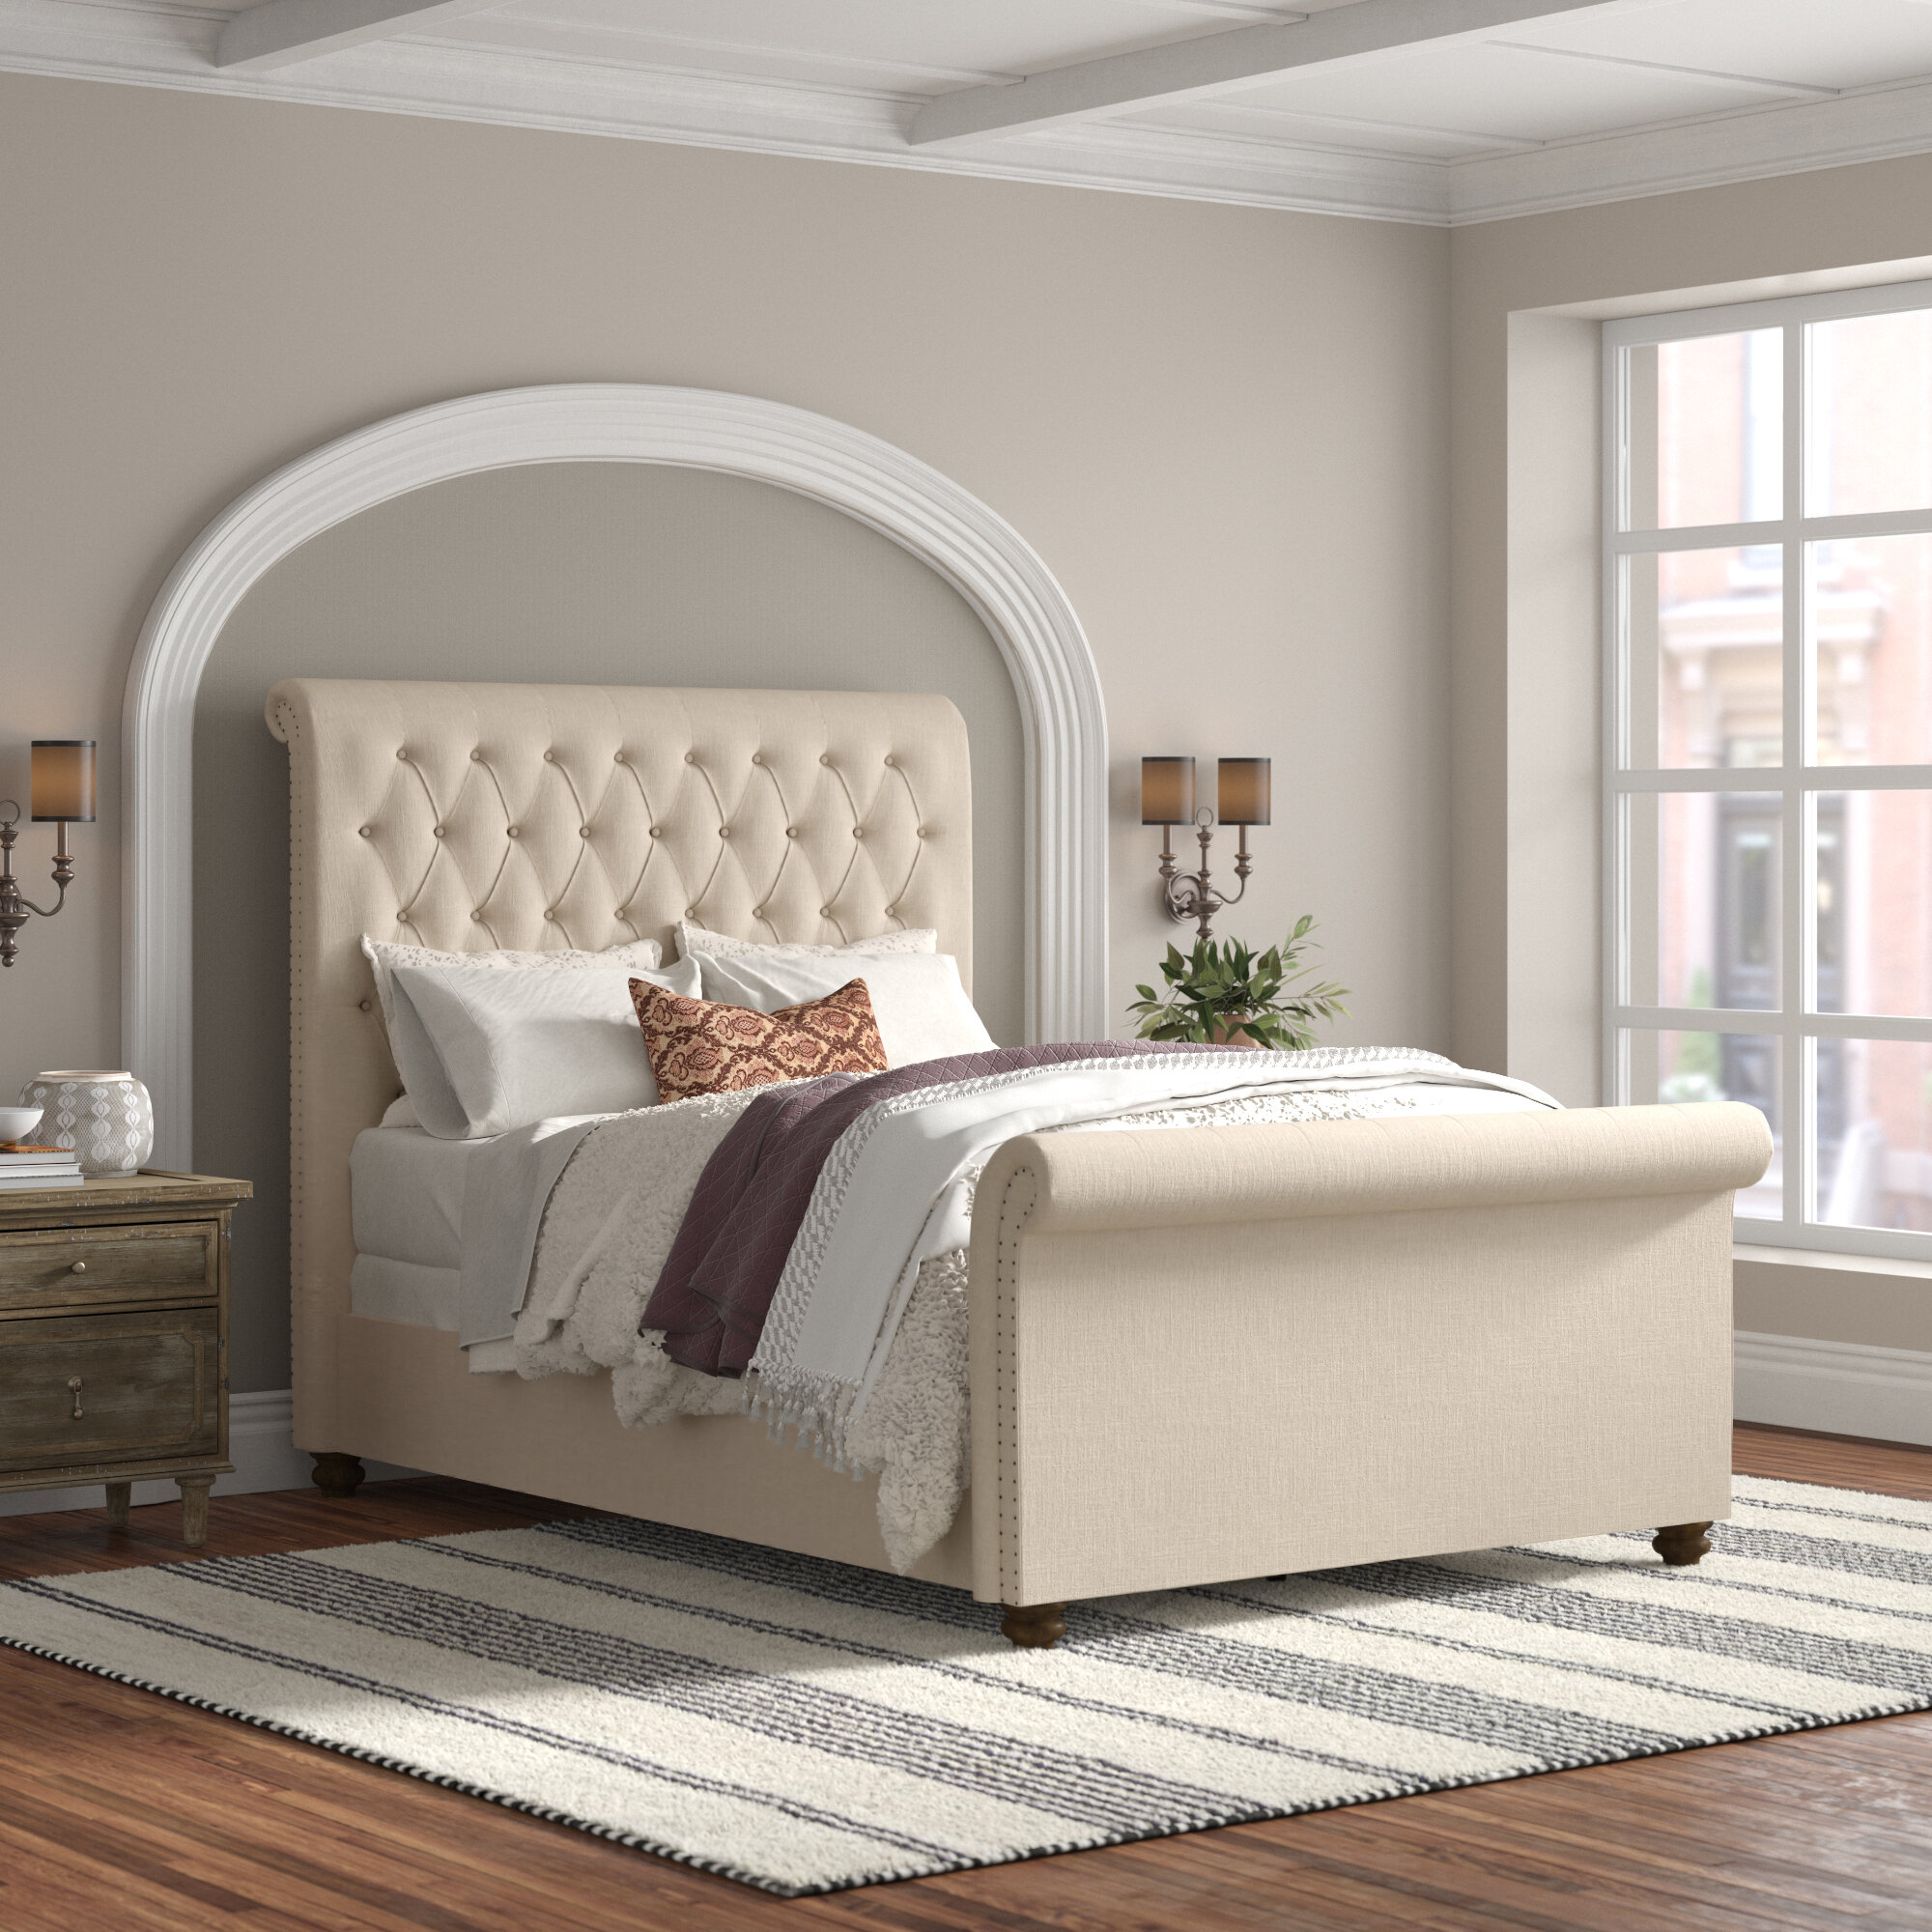 Allegro Upholstered Sleigh Bed Reviews Joss Main